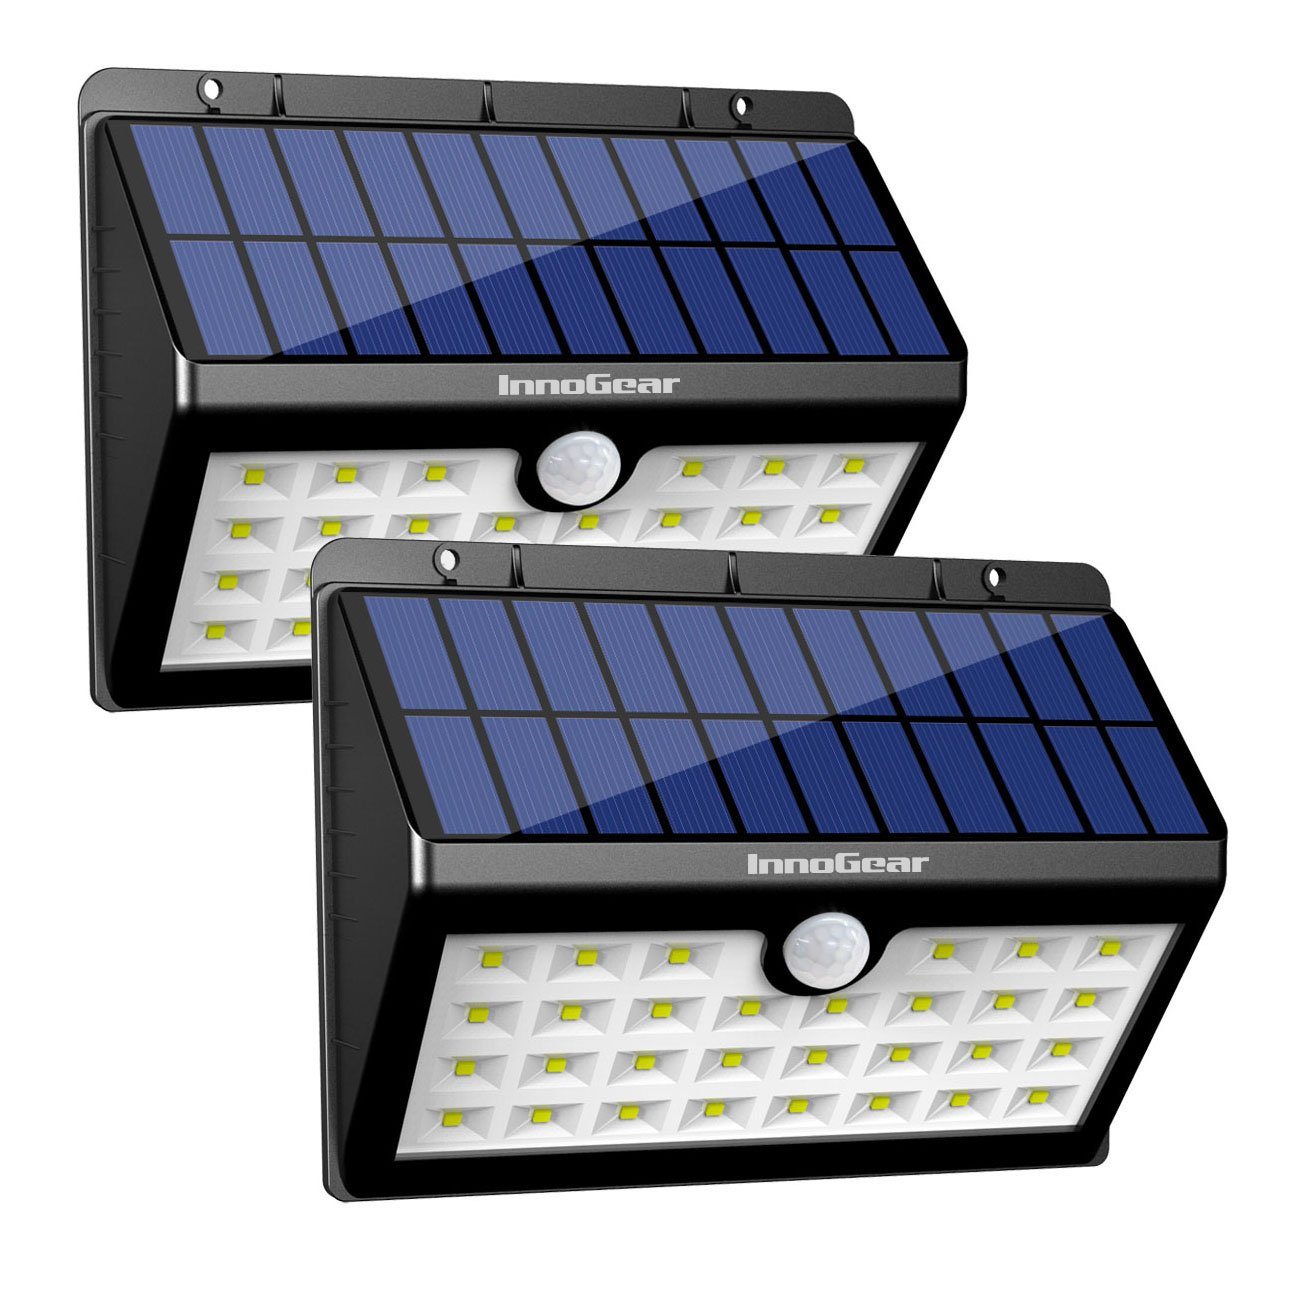 innogear solar lights 30 led wall light outdoor security. Black Bedroom Furniture Sets. Home Design Ideas